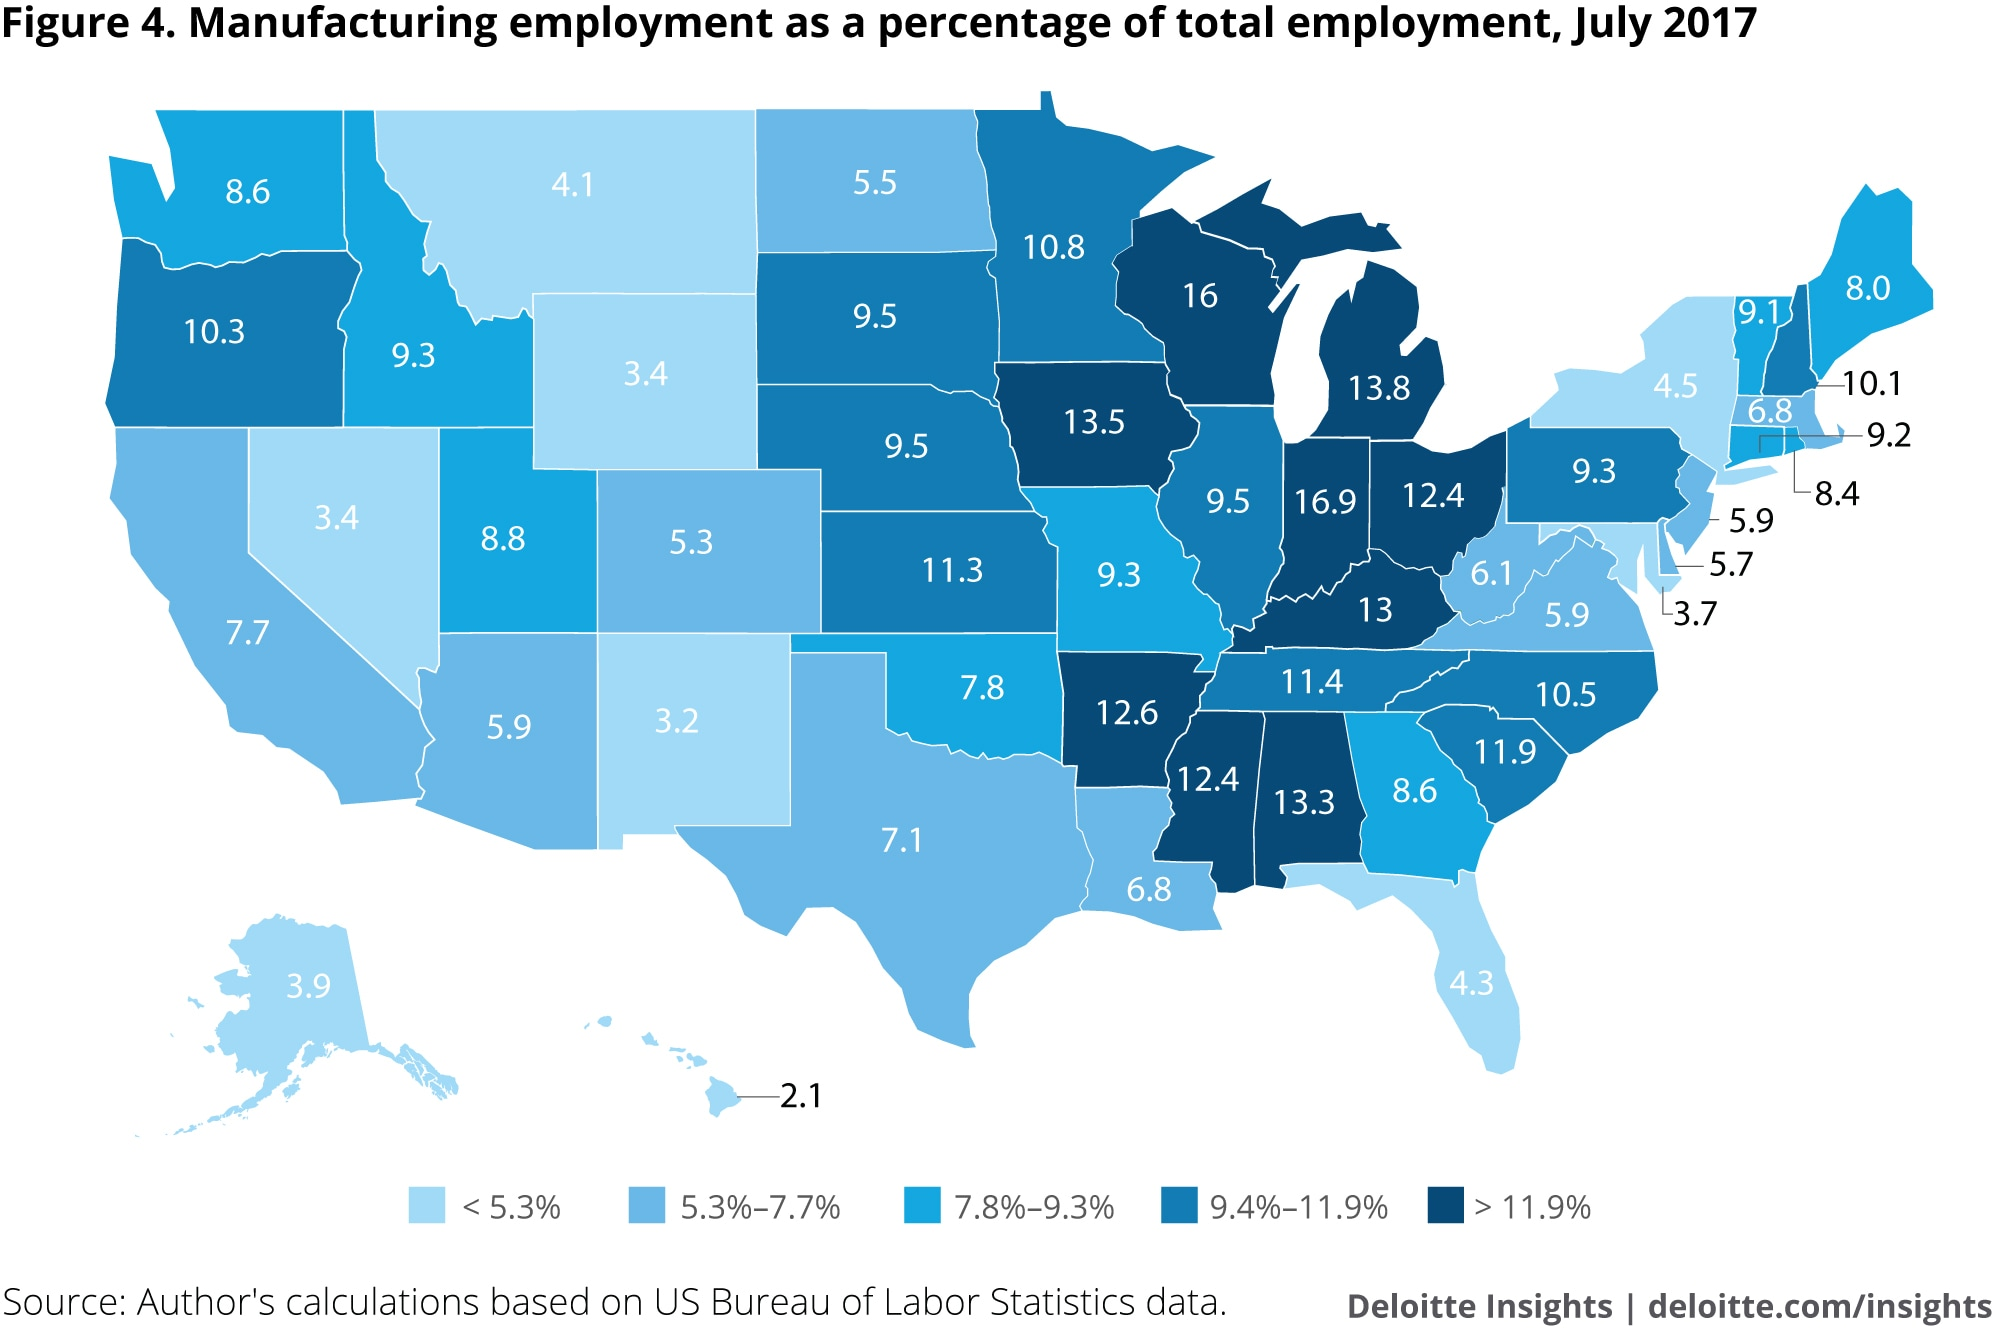 Manufacturing employment as a percentage of total employment, July 2017